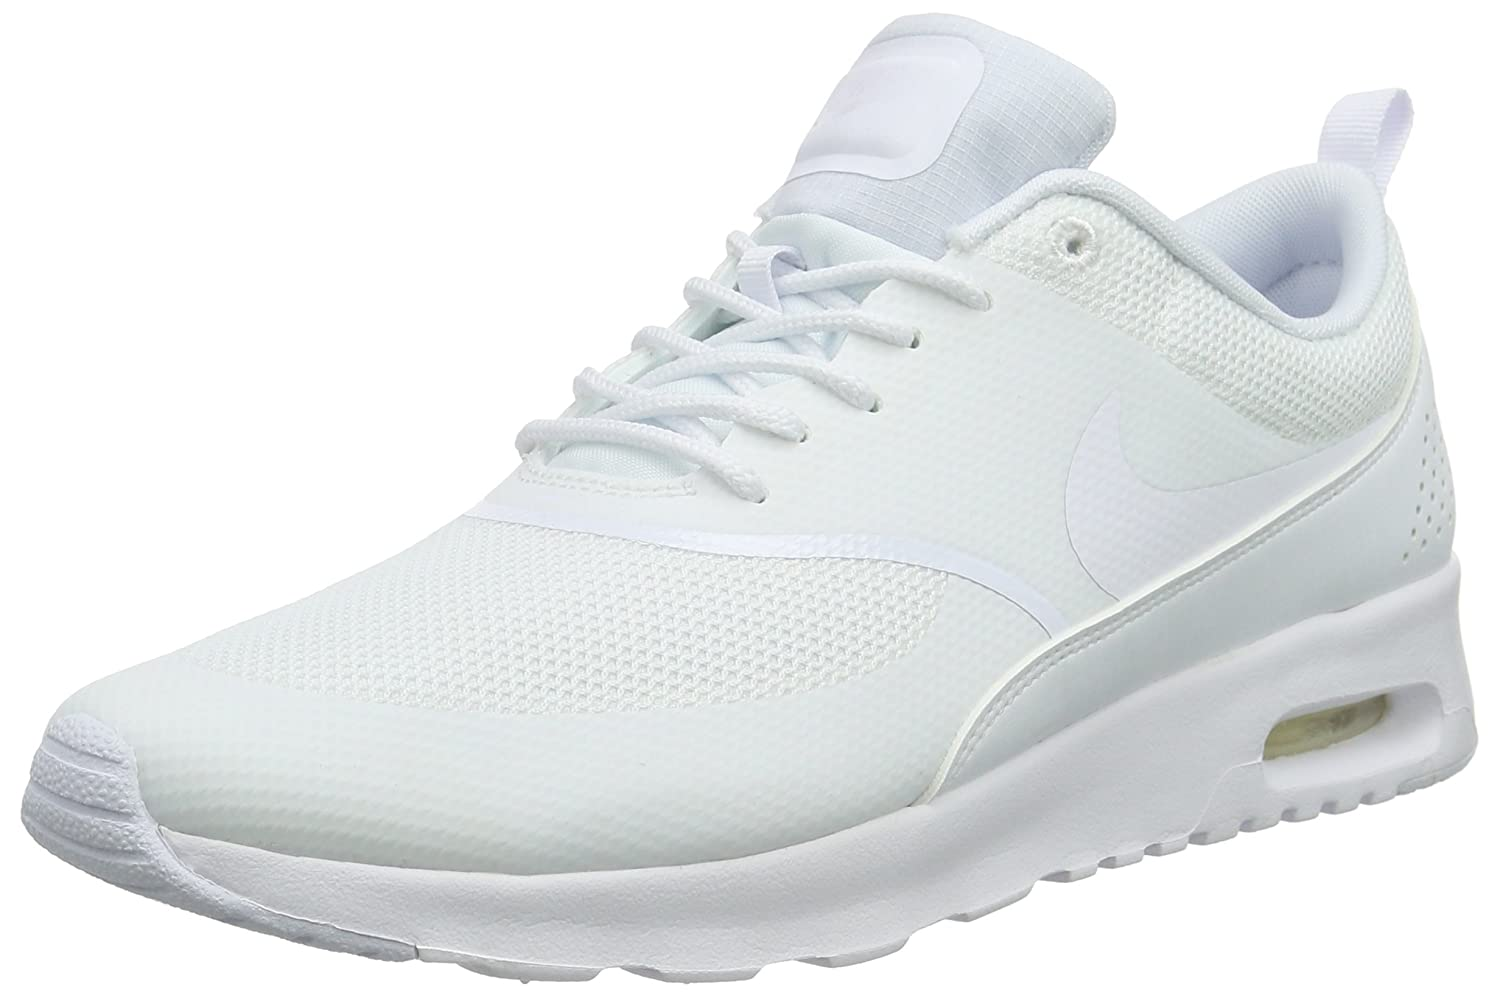 half off 64a6b ed0c6 Nike Air Max Thea, Women Low-Top Sneakers, White (White White), 8.5 UK (43  EU)  Amazon.co.uk  Shoes   Bags